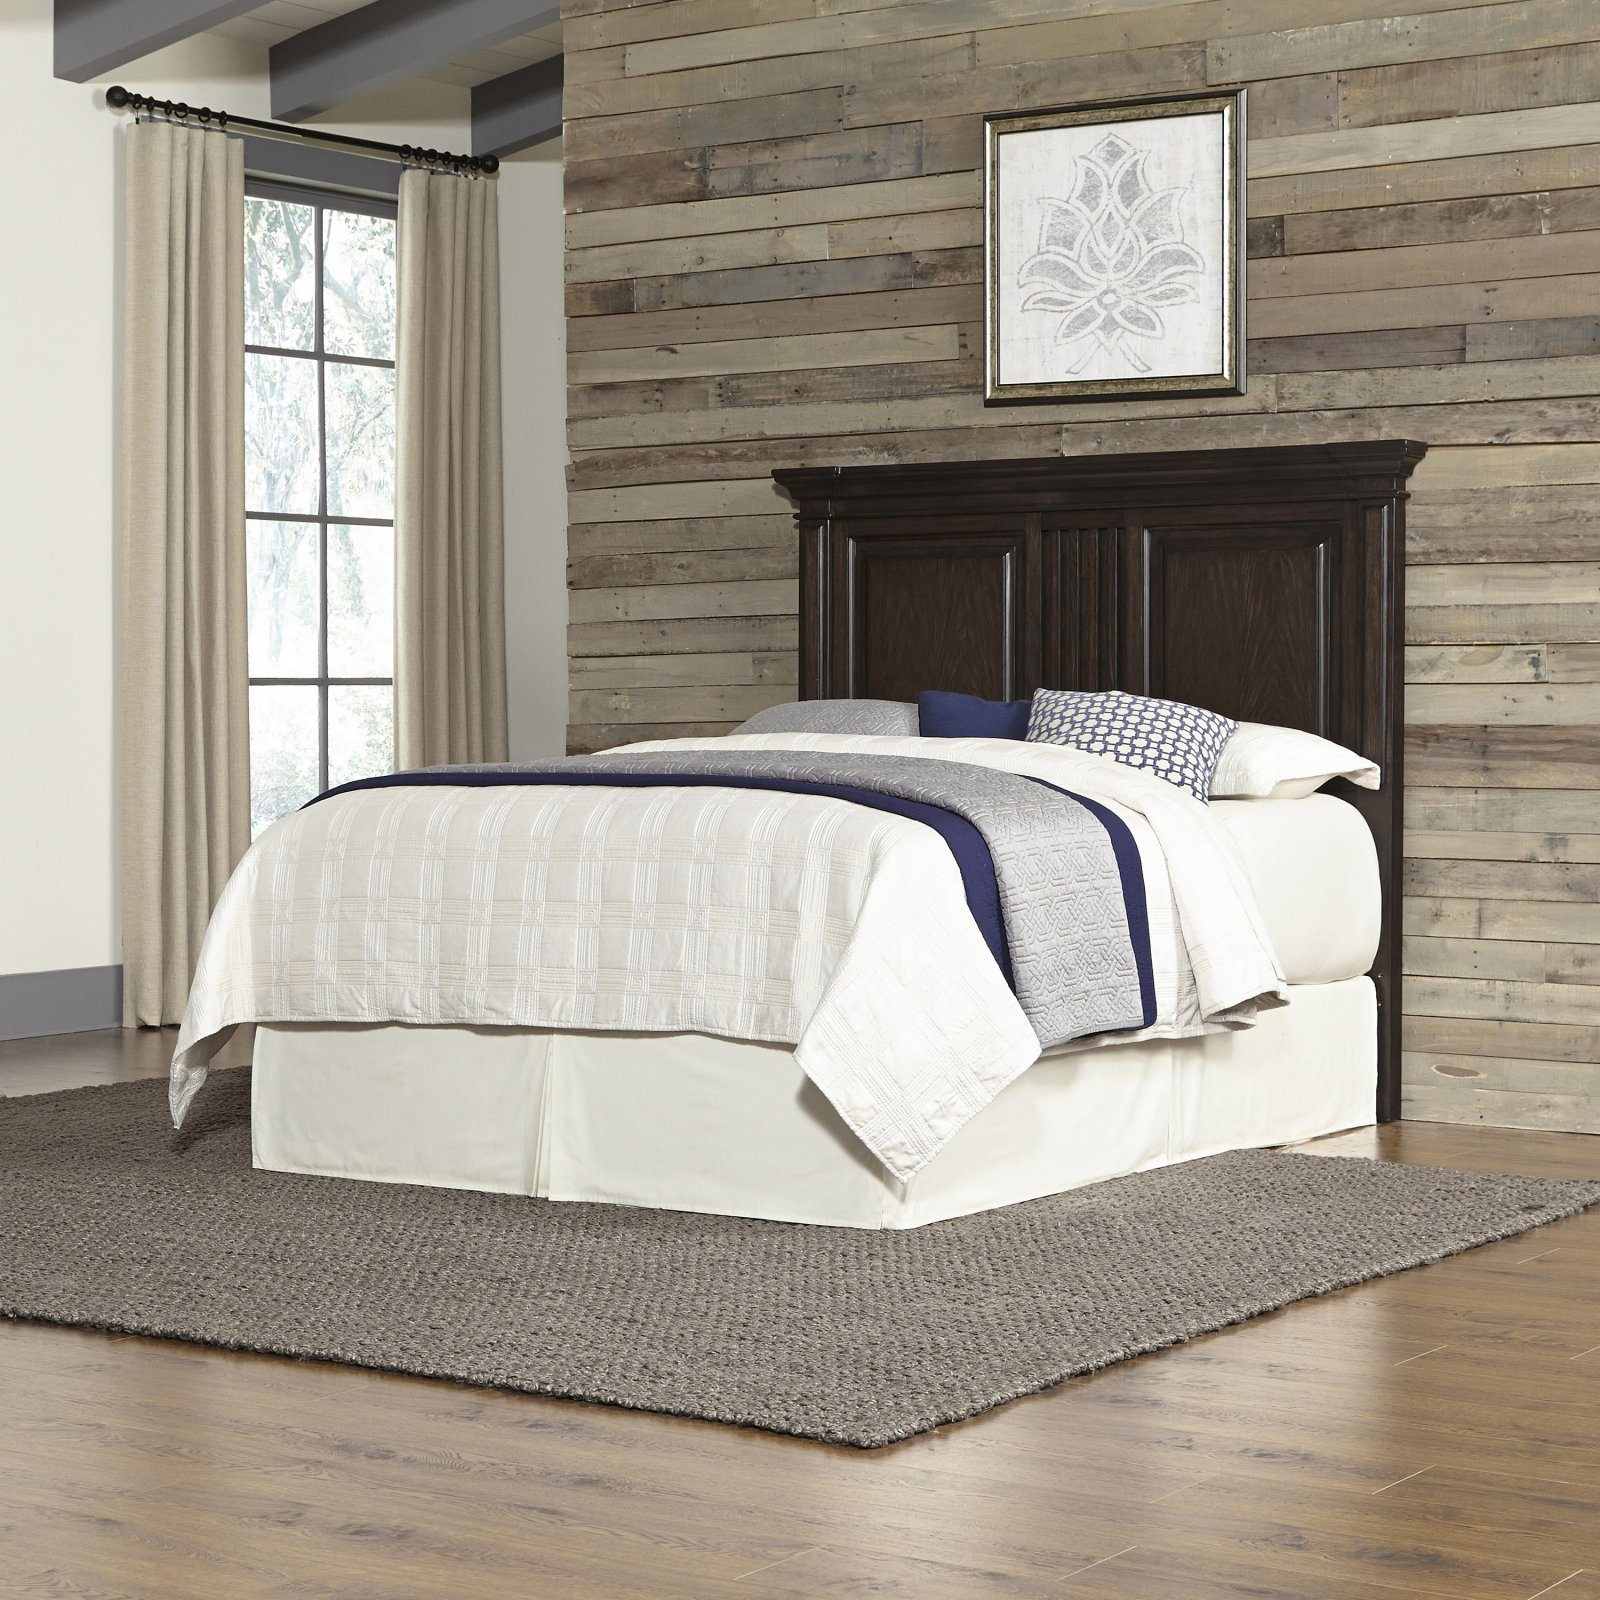 Home Styles Prairie Home King/California King Headboard